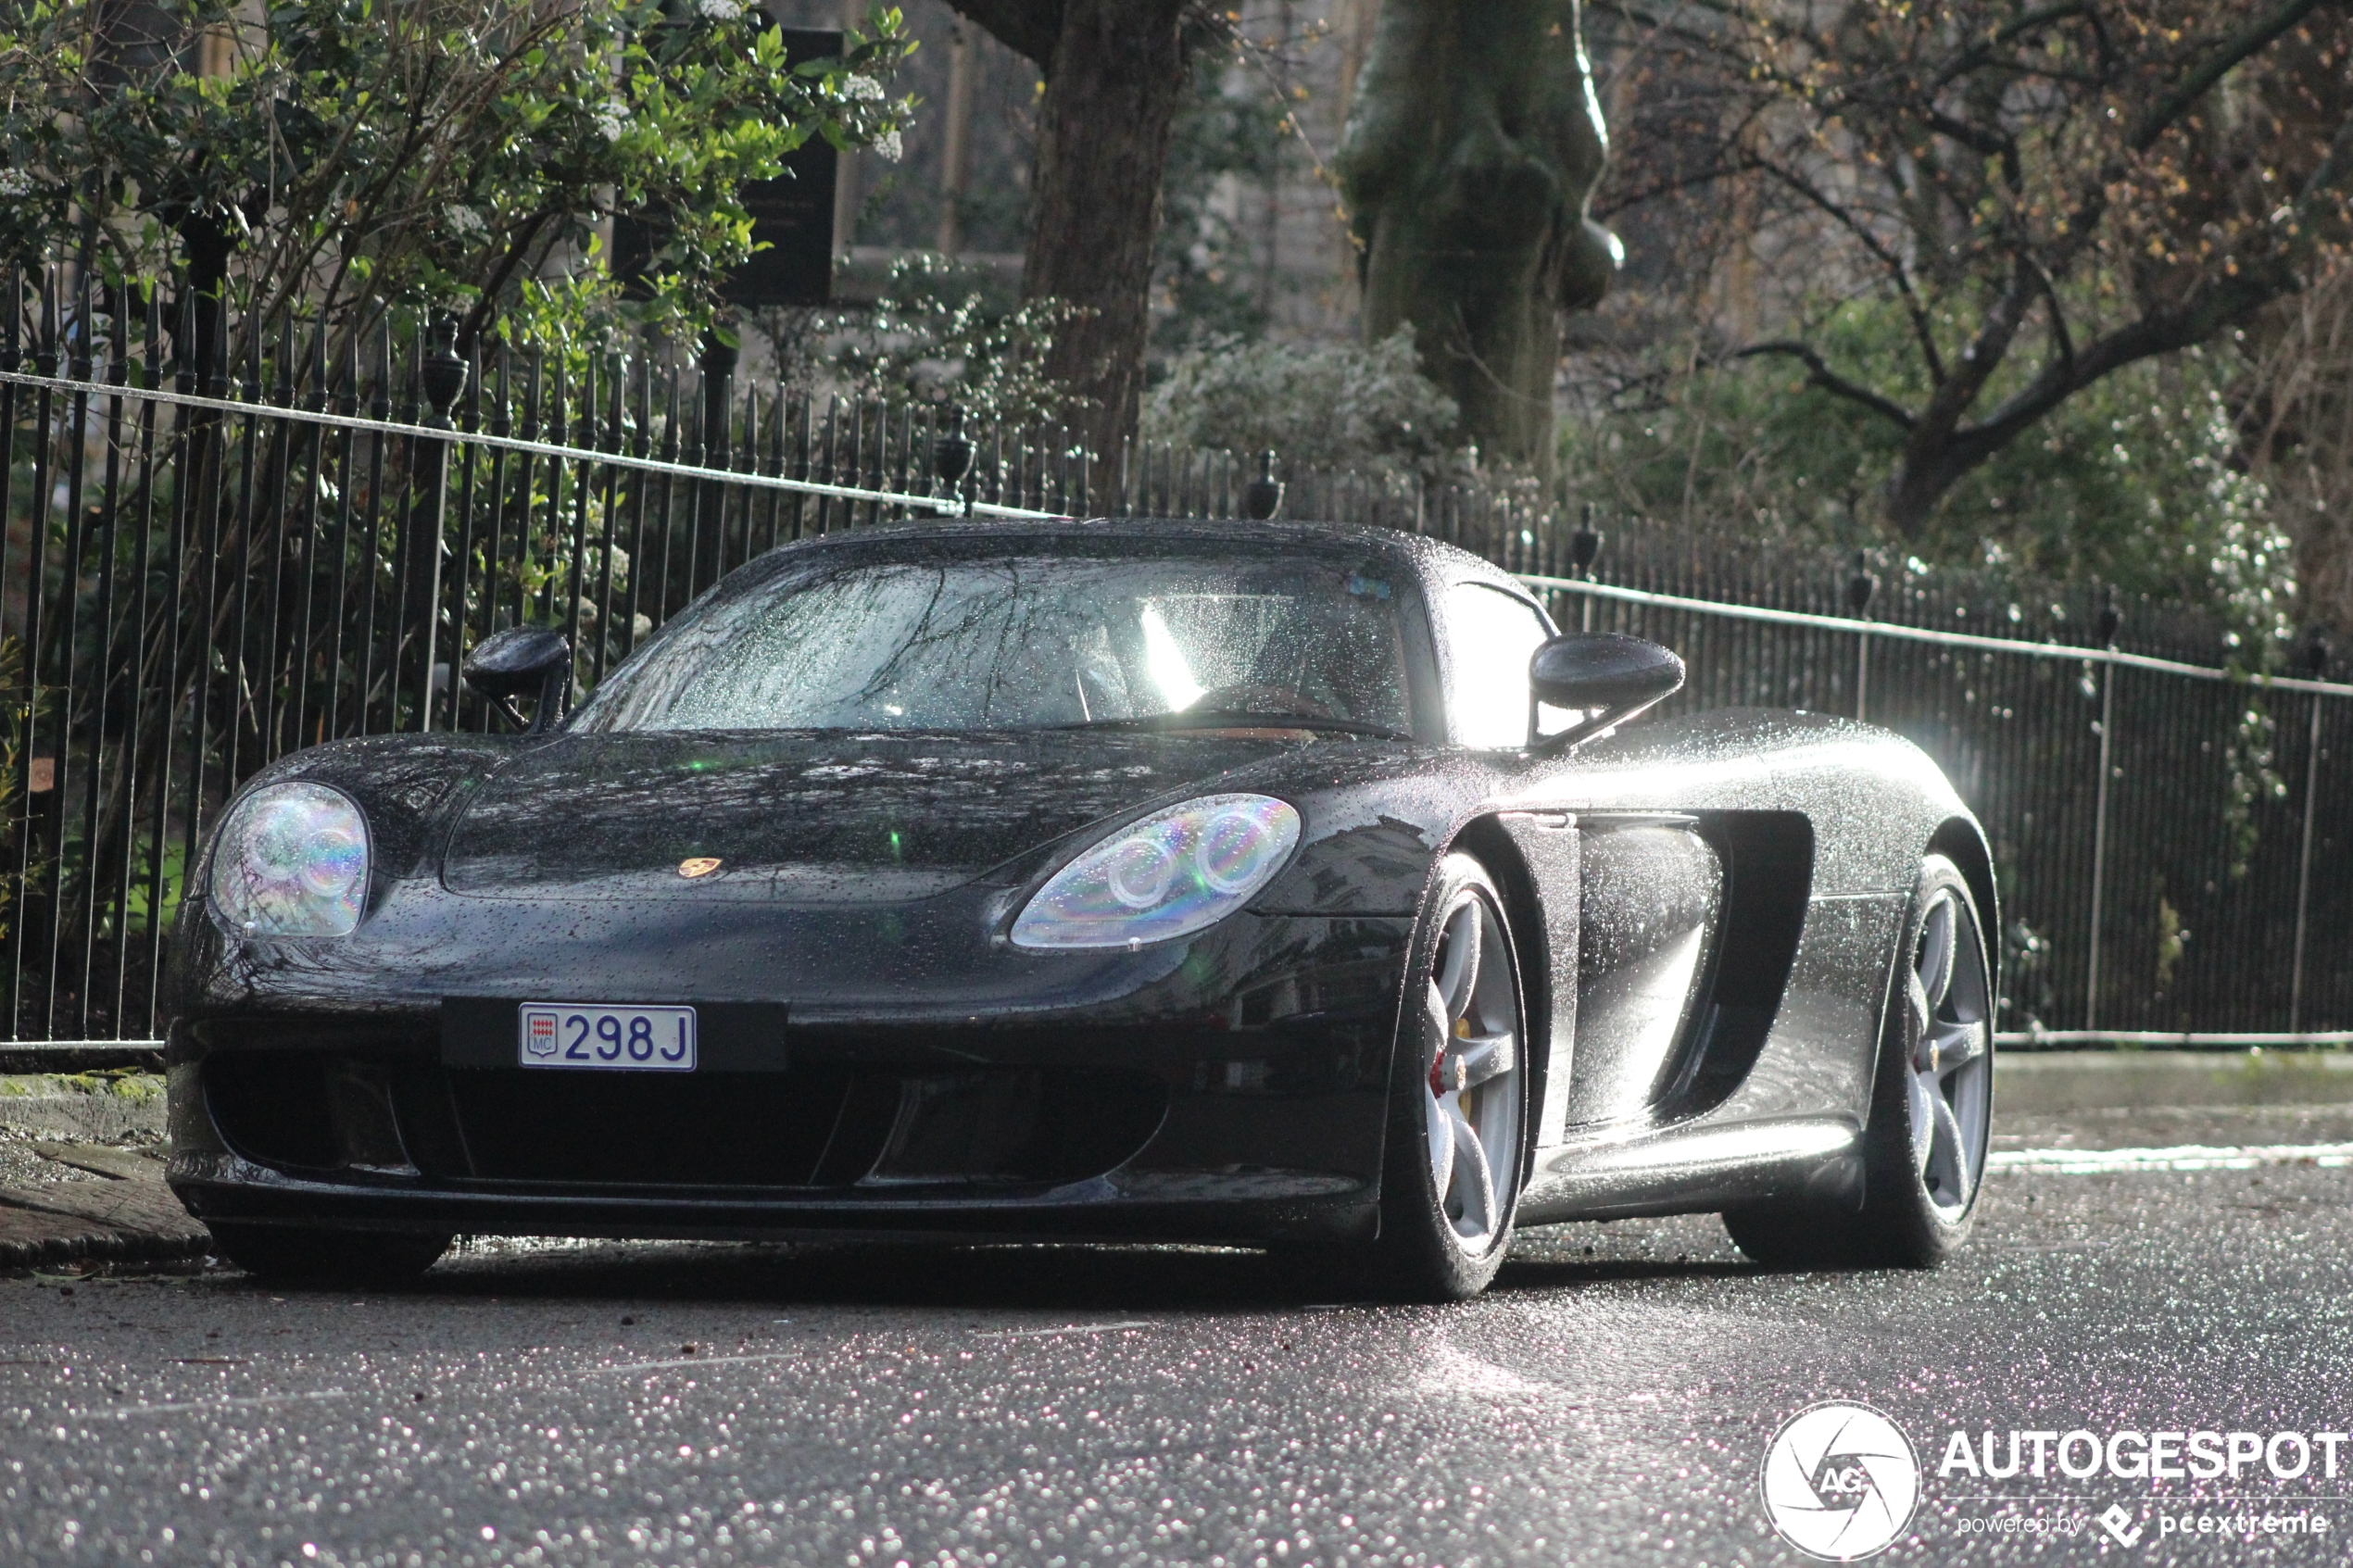 Porsche Carrera GT enjoys some typical British Weather